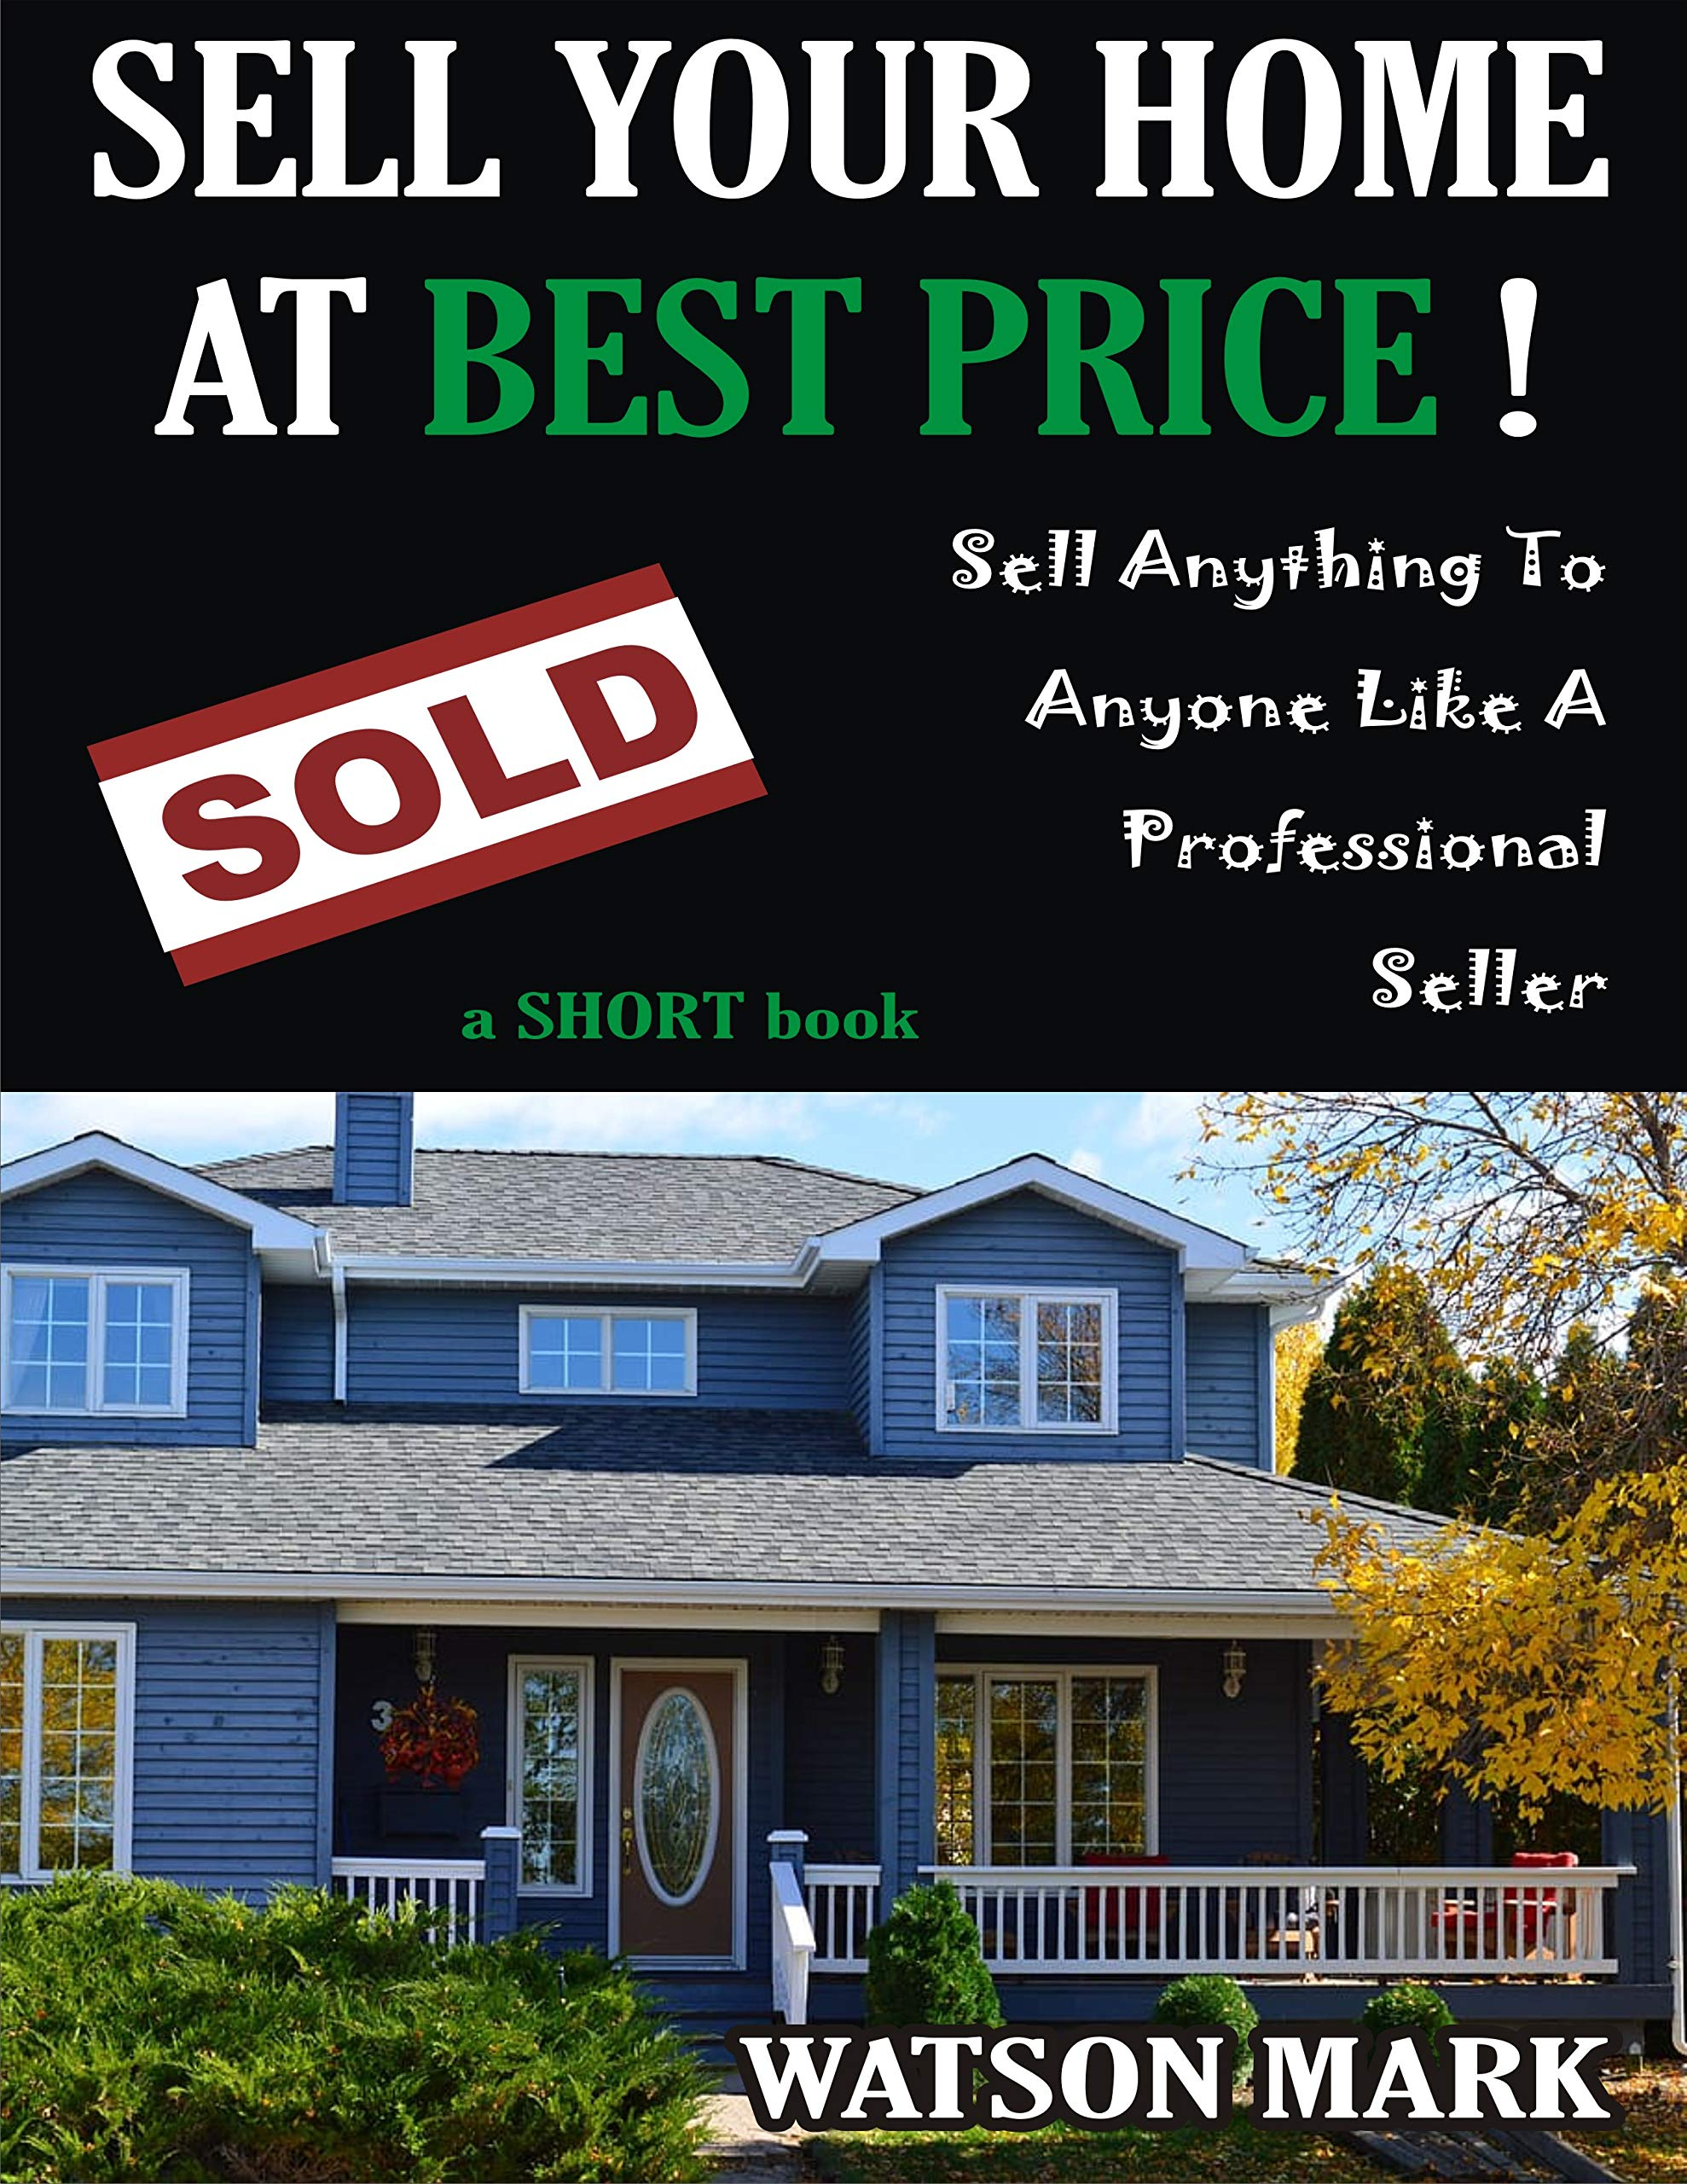 SELL YOUR HOME AT BEST PRICE: HOME SELLING SECRETS & TIPS